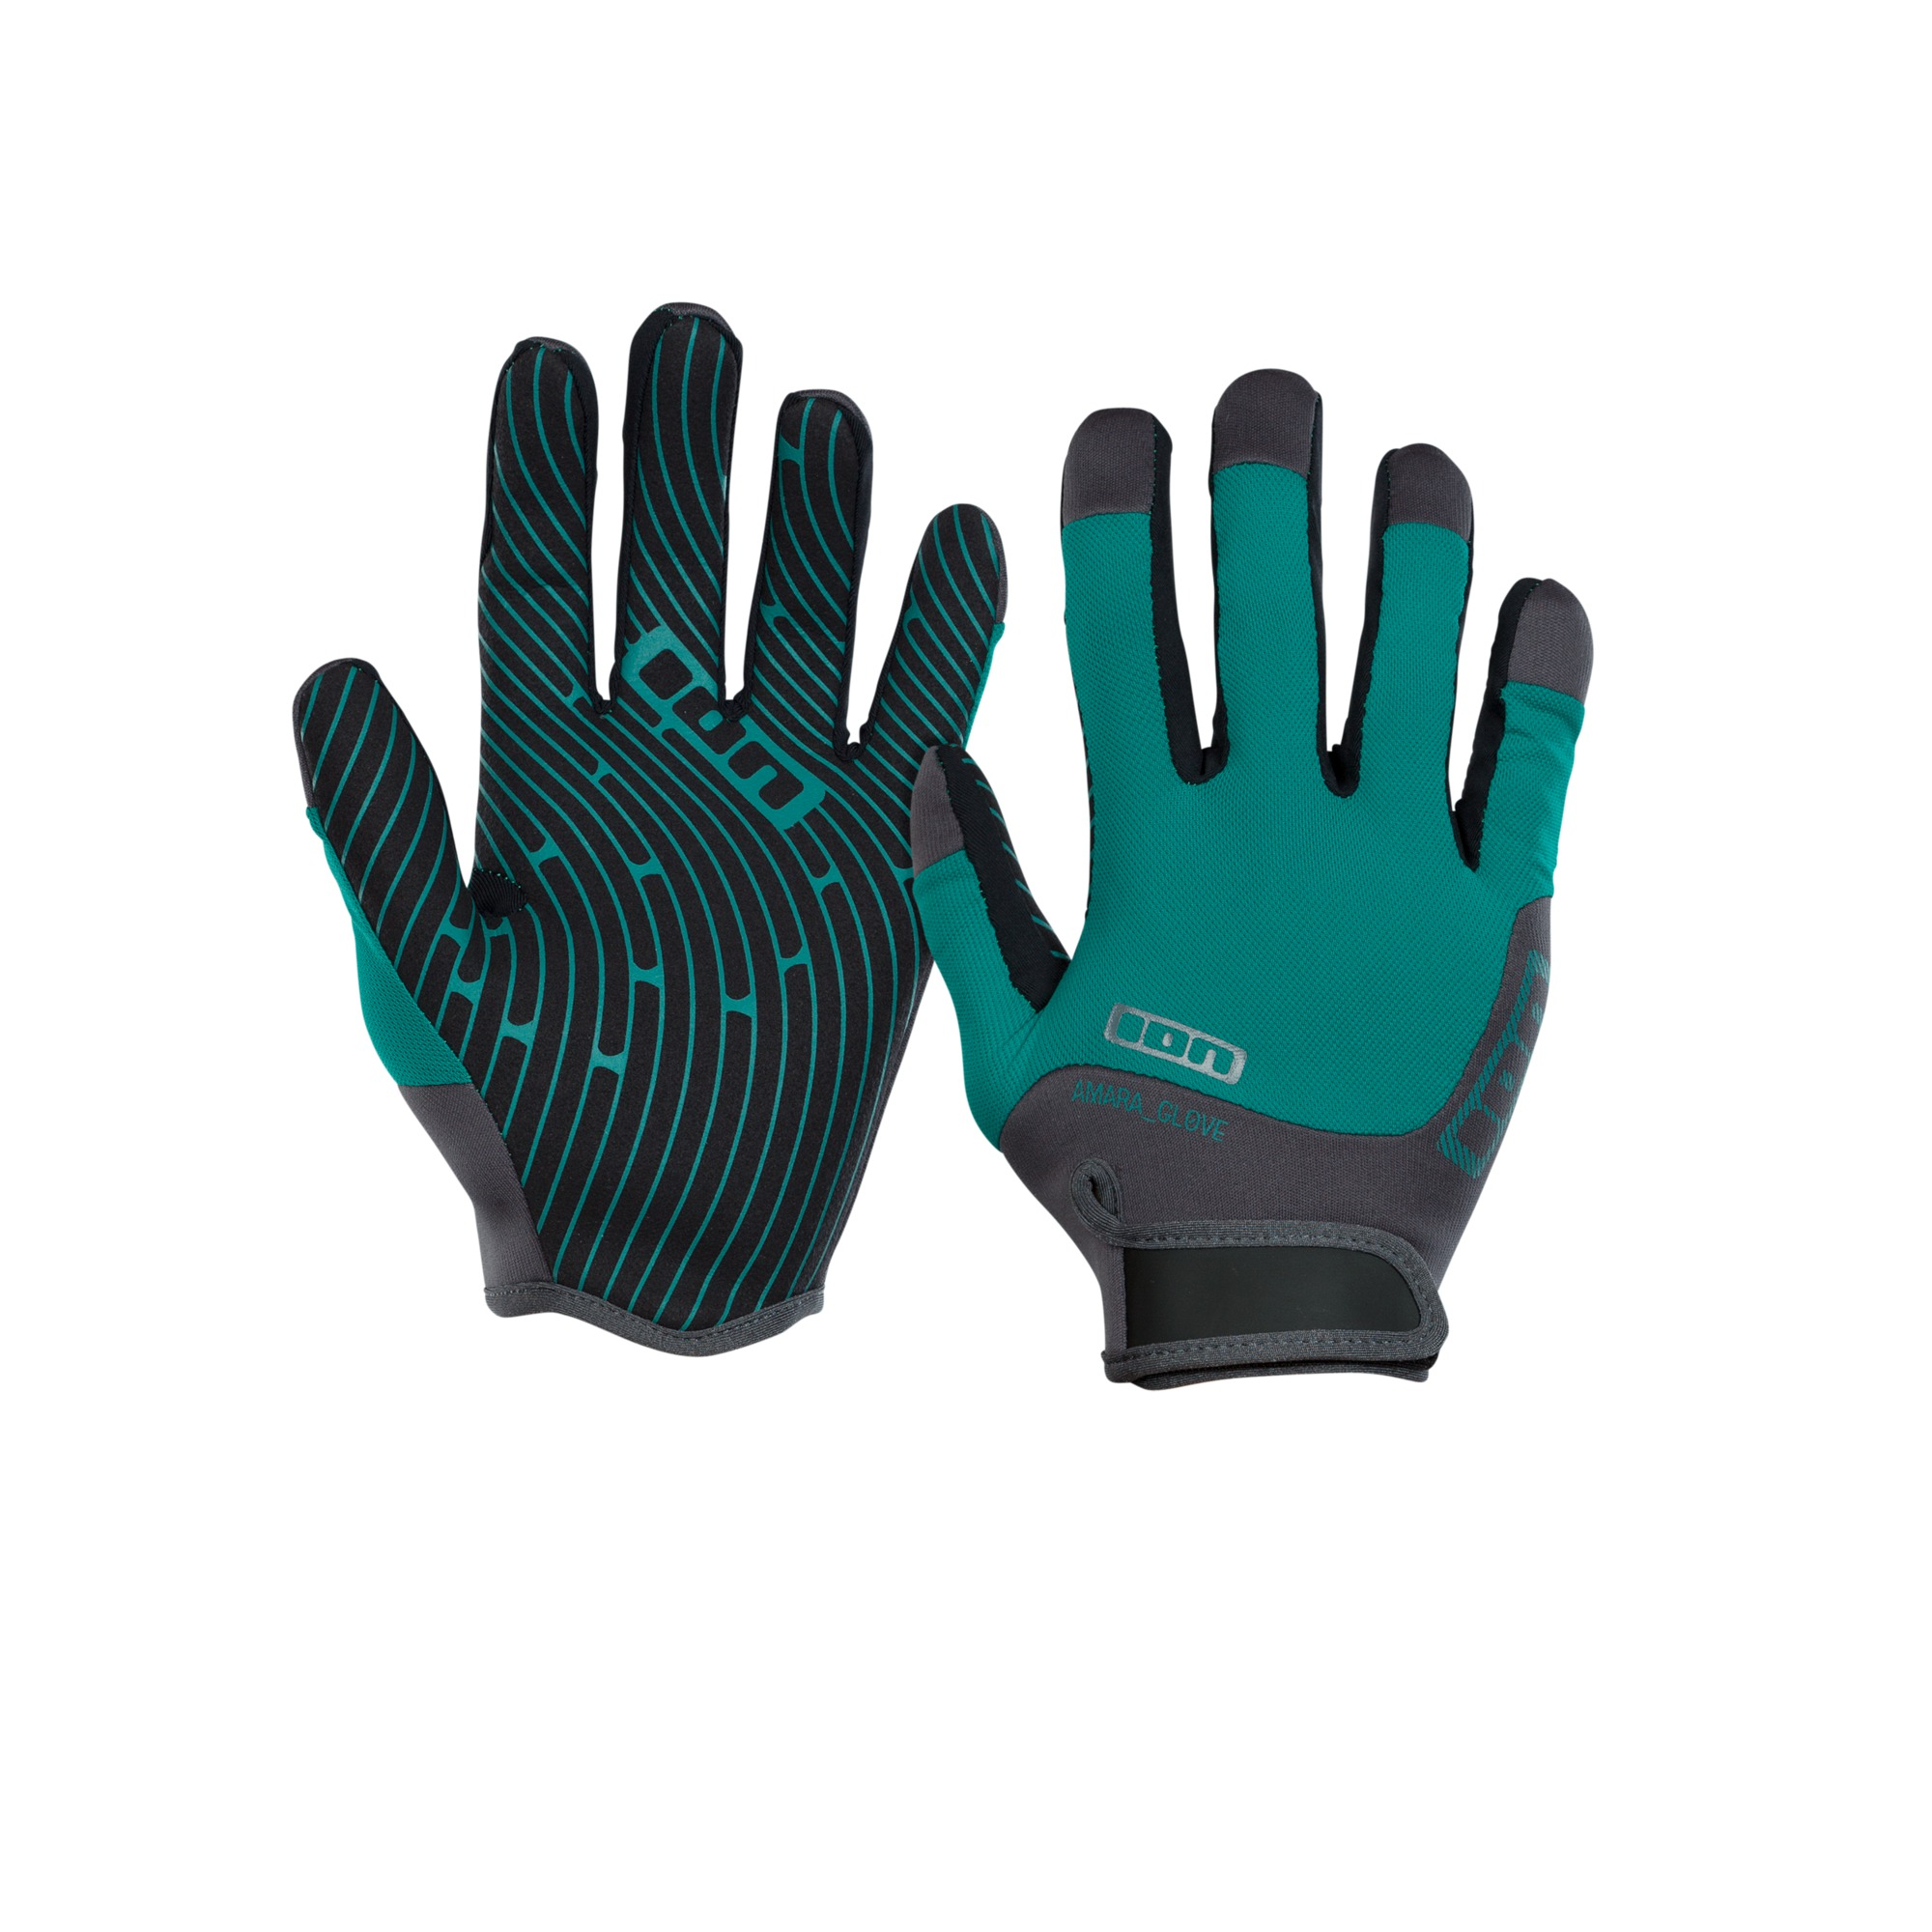 防48400-4141_Amara Gloves Full Finger_3